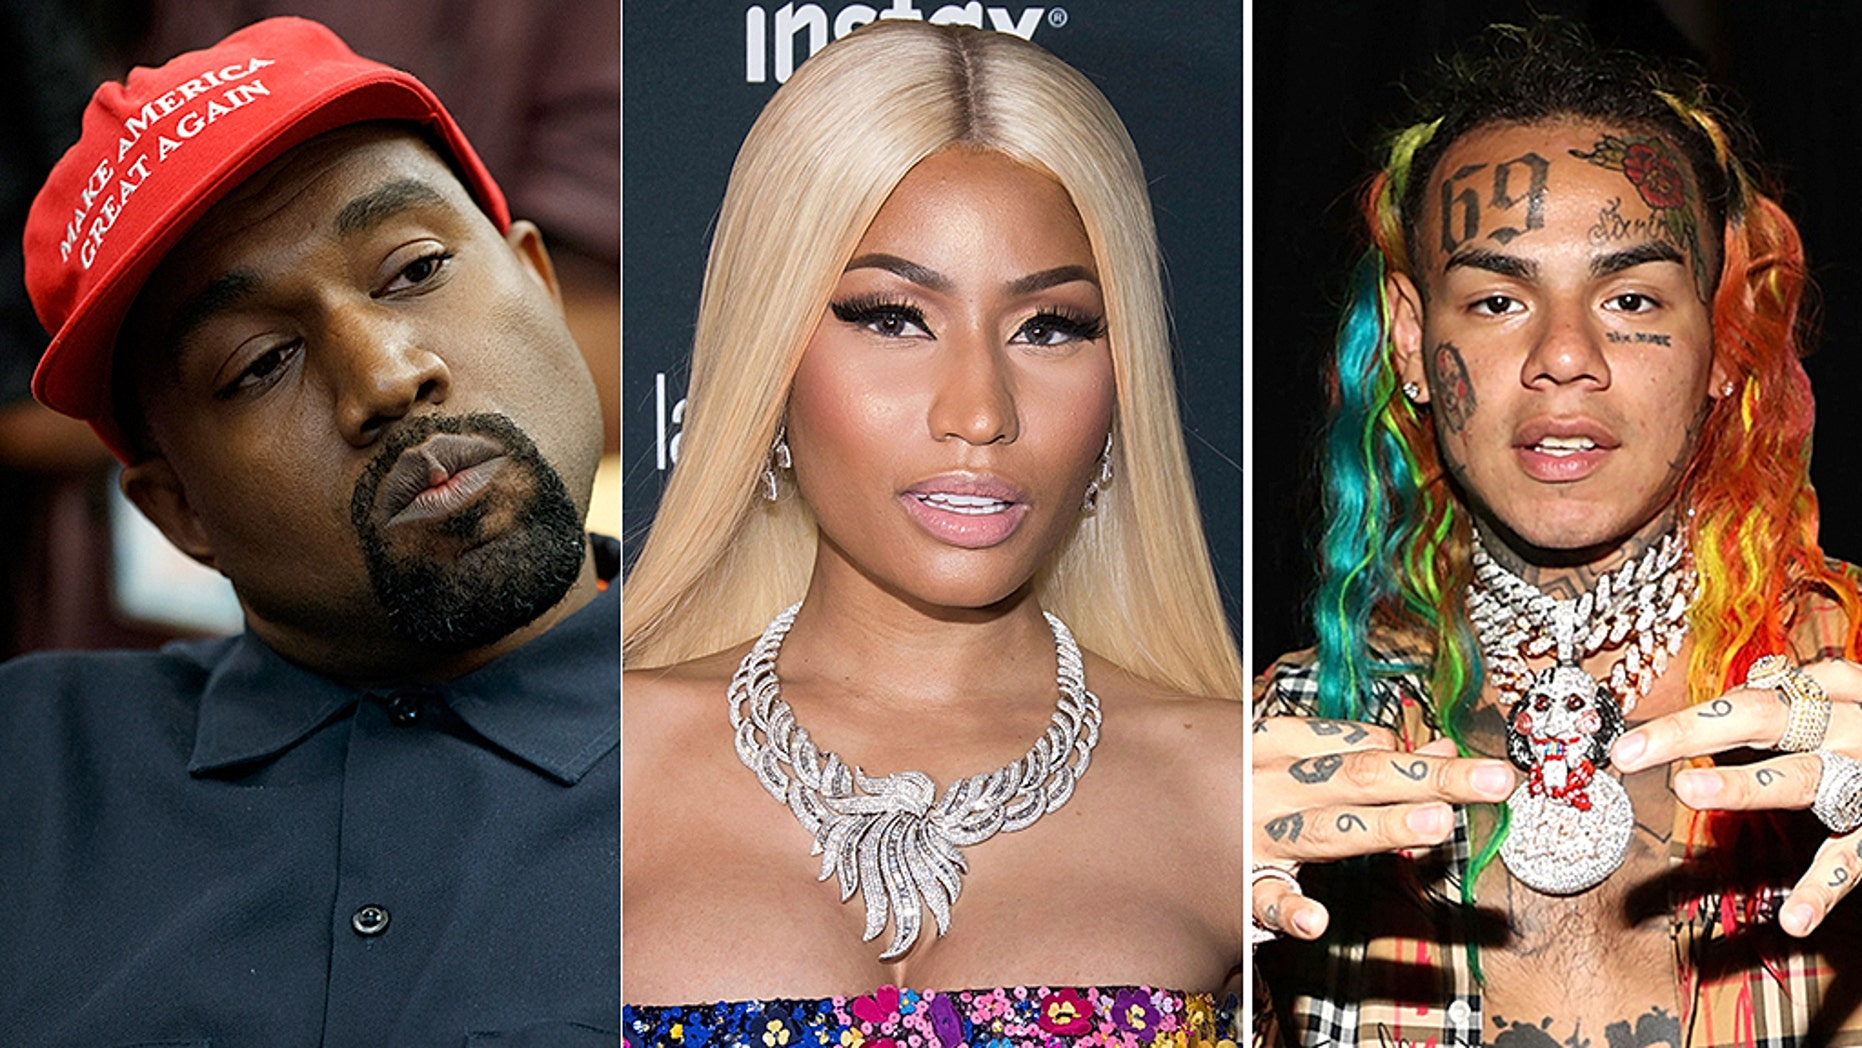 Shooting Occurred at Kanye West, 6ix9ine and Nicki Minaj's Video Shoot Location